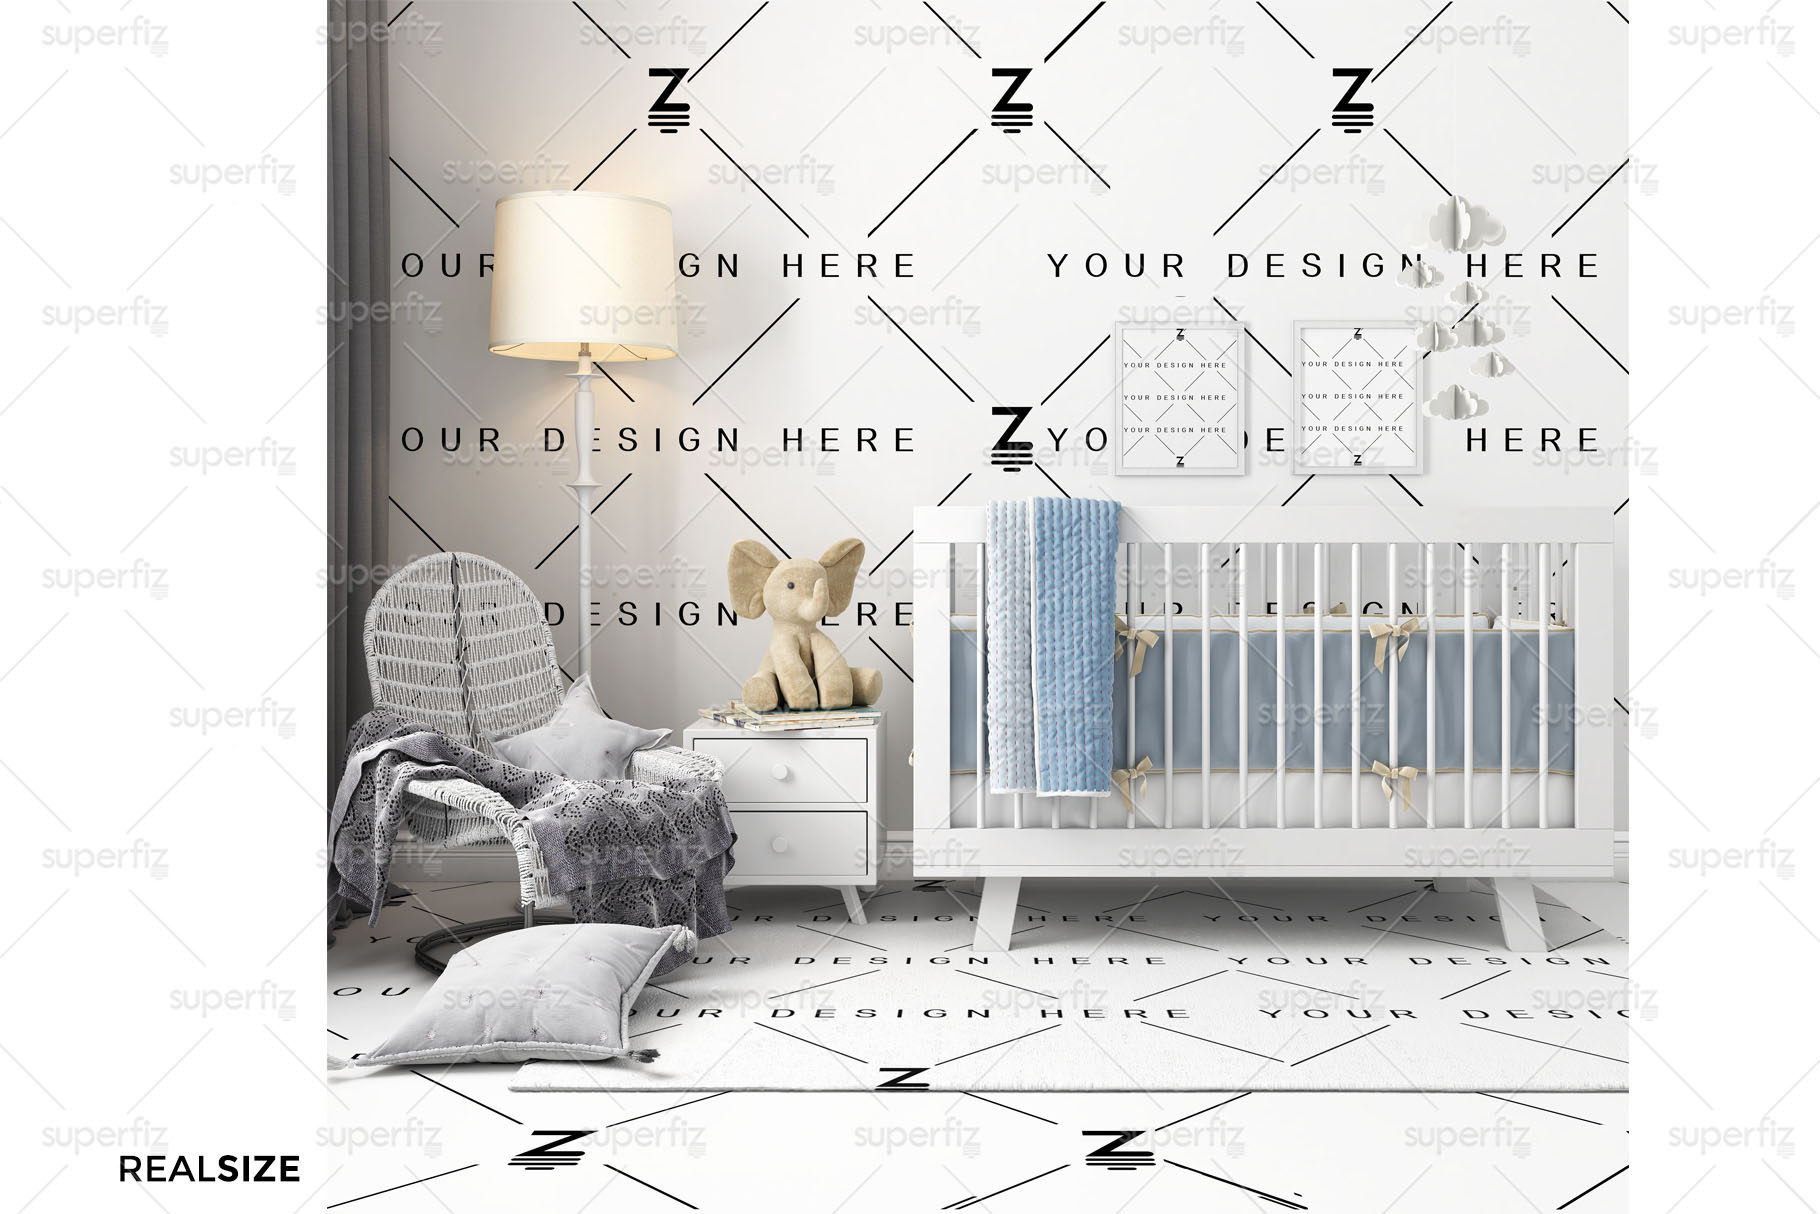 Wallpaper, floor, carpet and frame Mockup Baby Bedroom SM60 example image 3